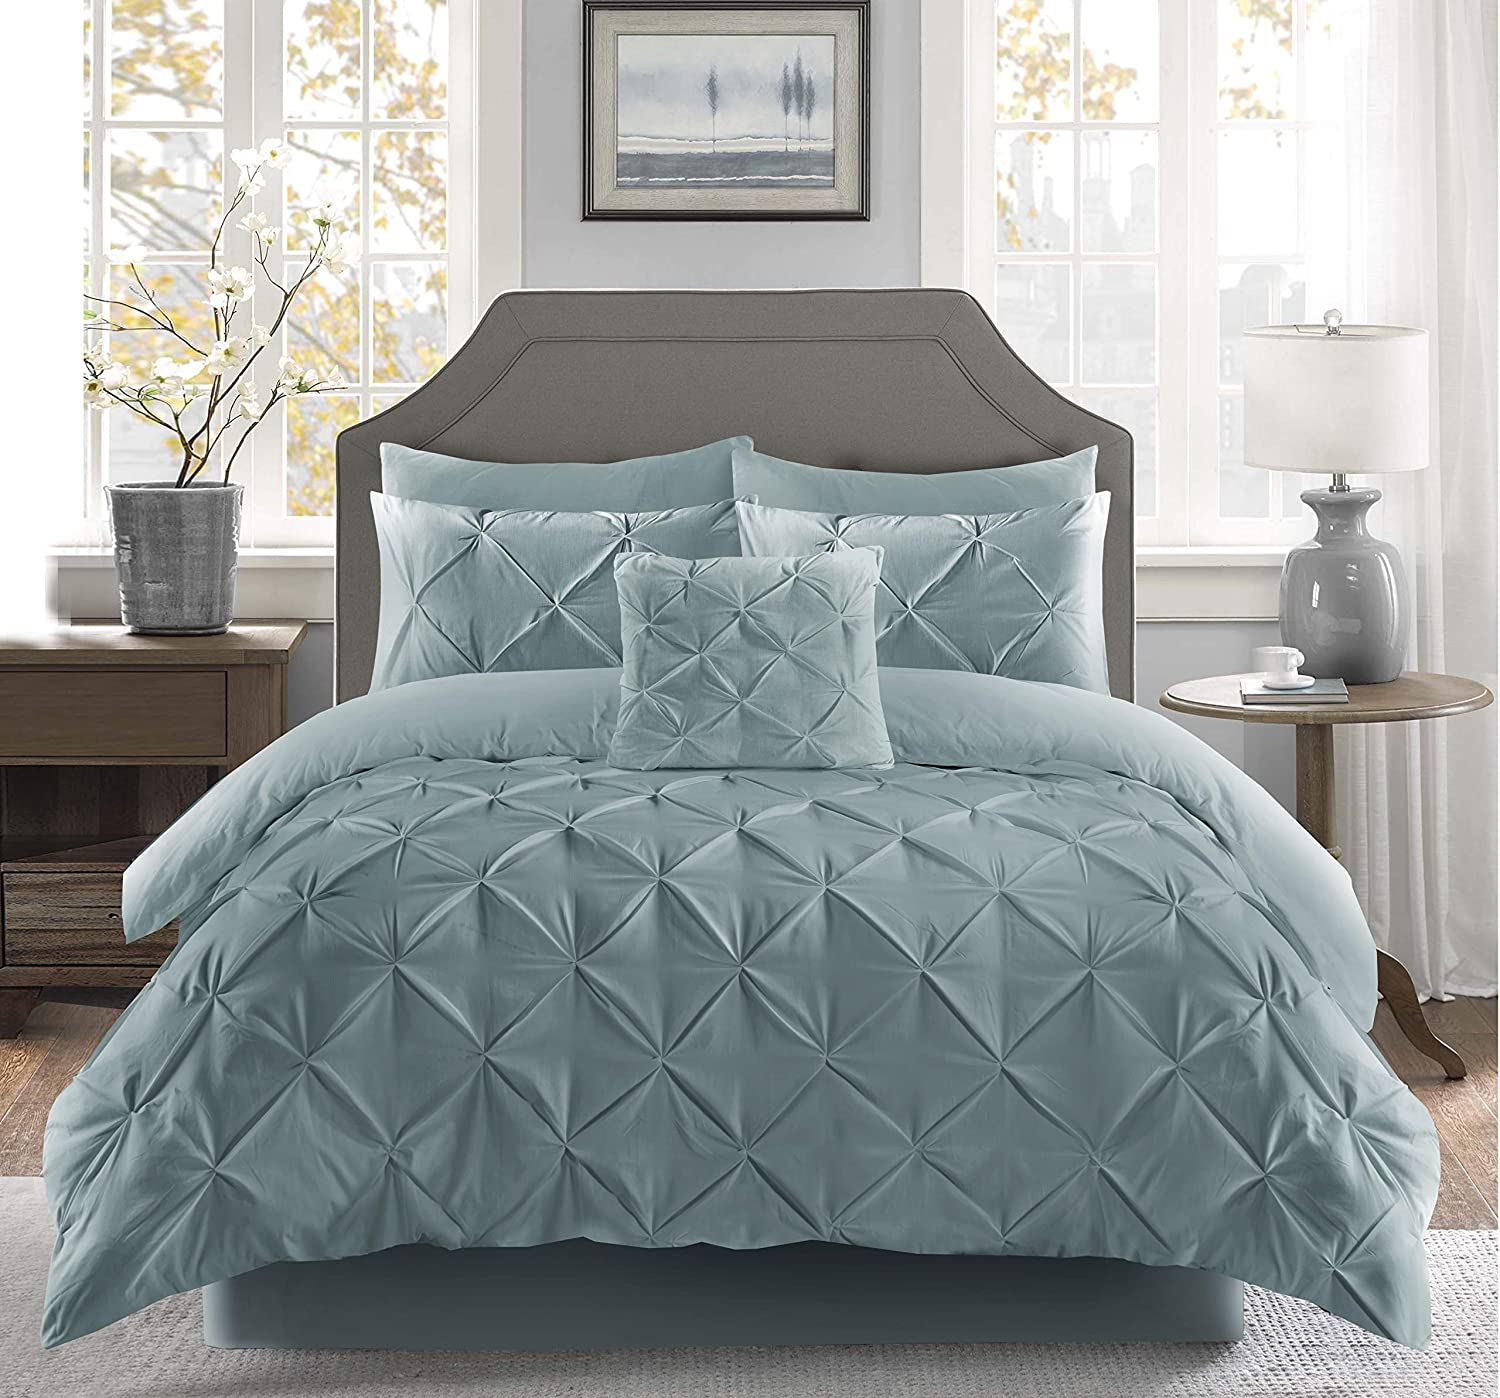 Fixtex Pinch Pleat Pintuck Duvet Cover Set with Fitted Sheet /& Pillow Cases Includes Complementary Cushion Cover Set of 5 Duck Egg, Double